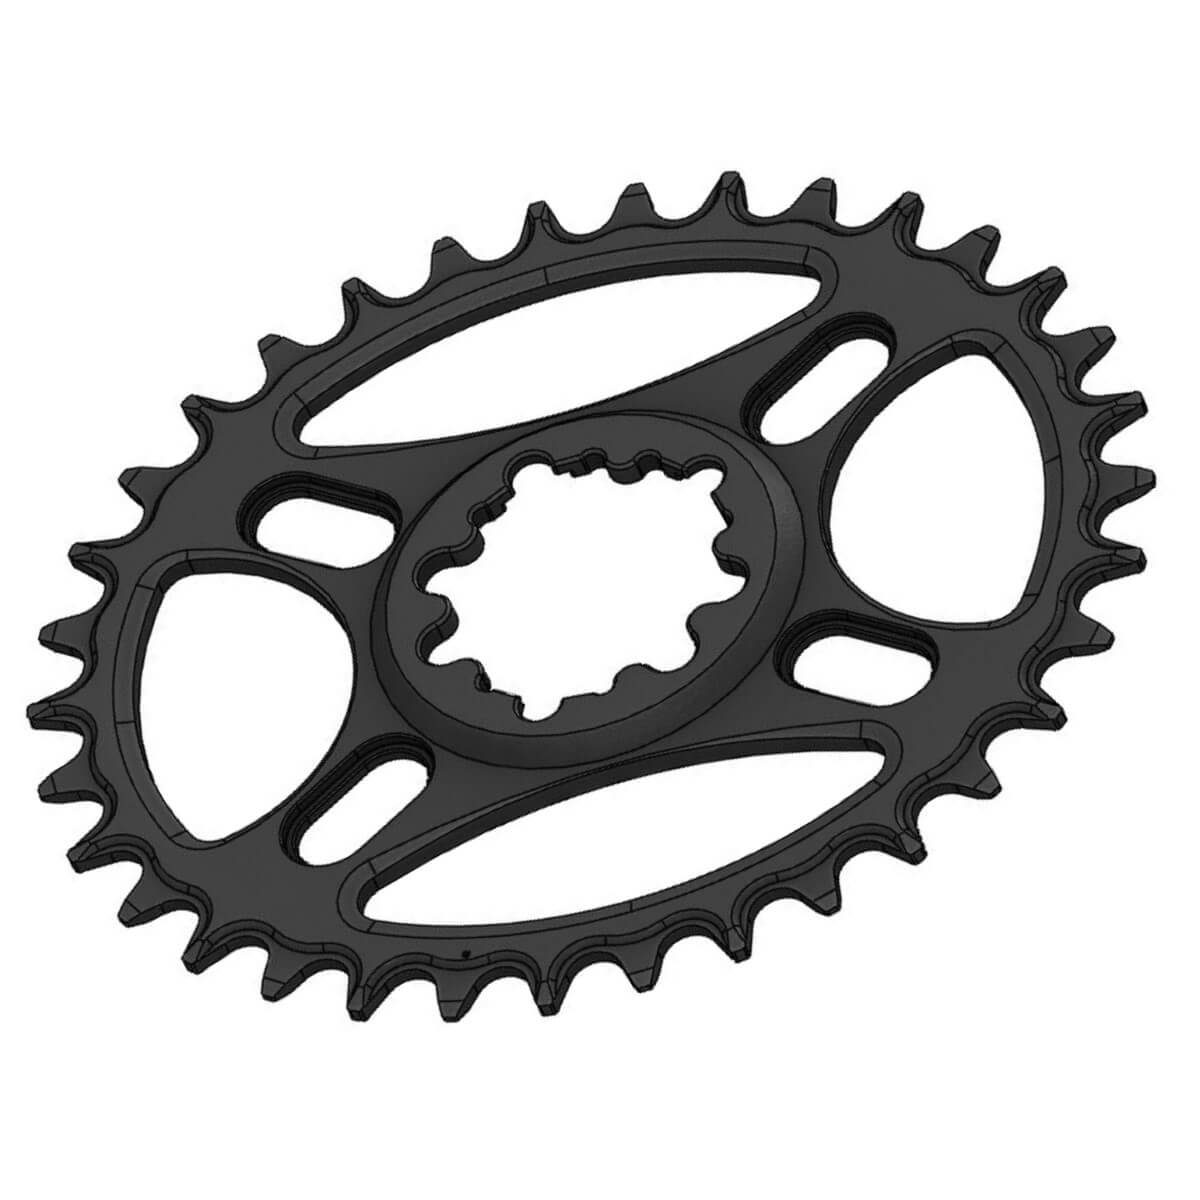 C20 Chainring Elliptic Narrow Wide 34T for Sram direct dub. Offset 3mm. SRAM Eagle.